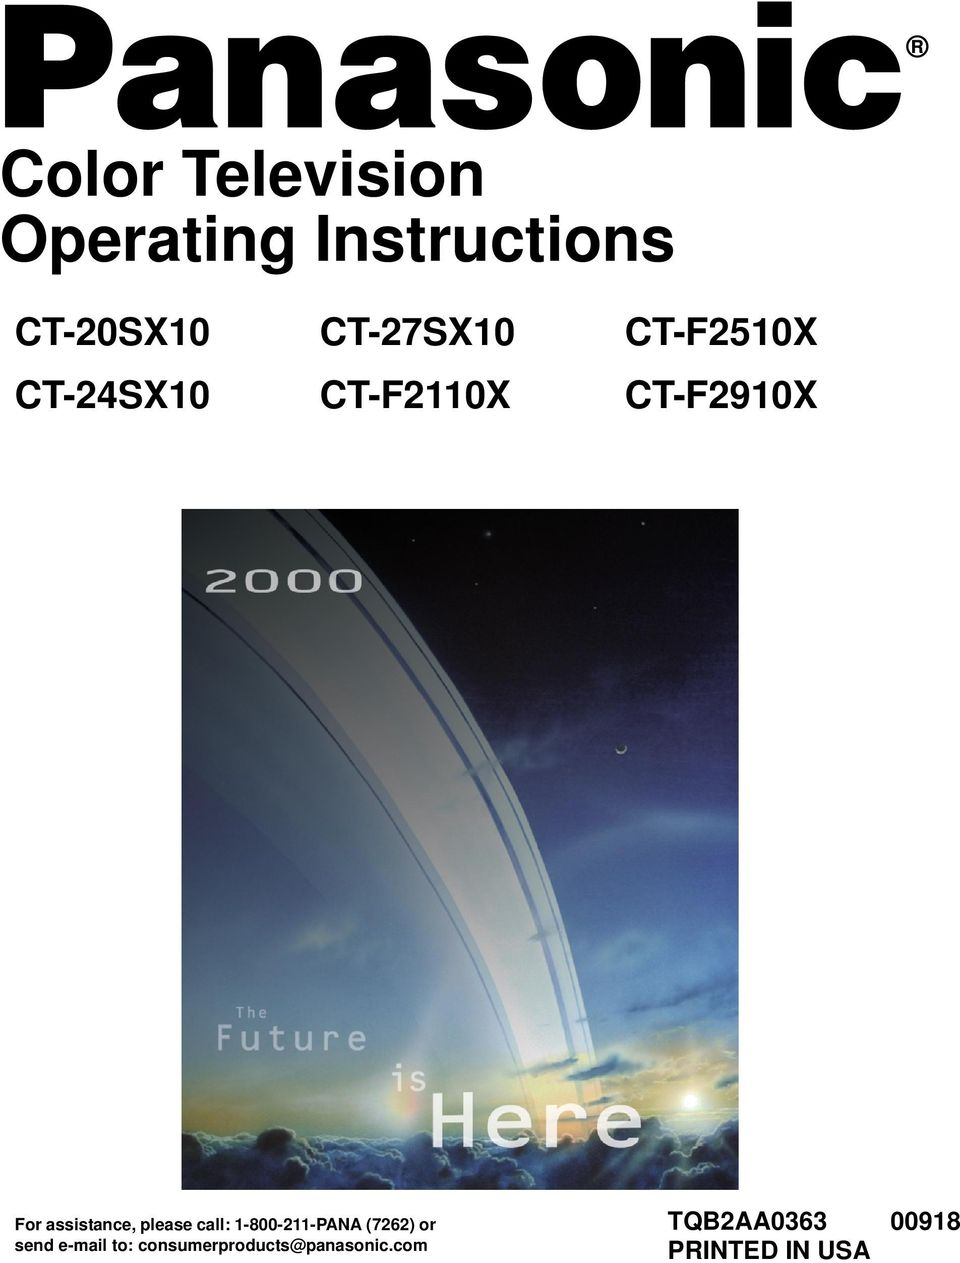 Colo Television Opeating Instctions CT-20SX10 CT-27SX10 CT-F2510X CT-24SX10 CT-F2110X CT-F2910X CT-F2110X CT-24SX10 CT-27SX10